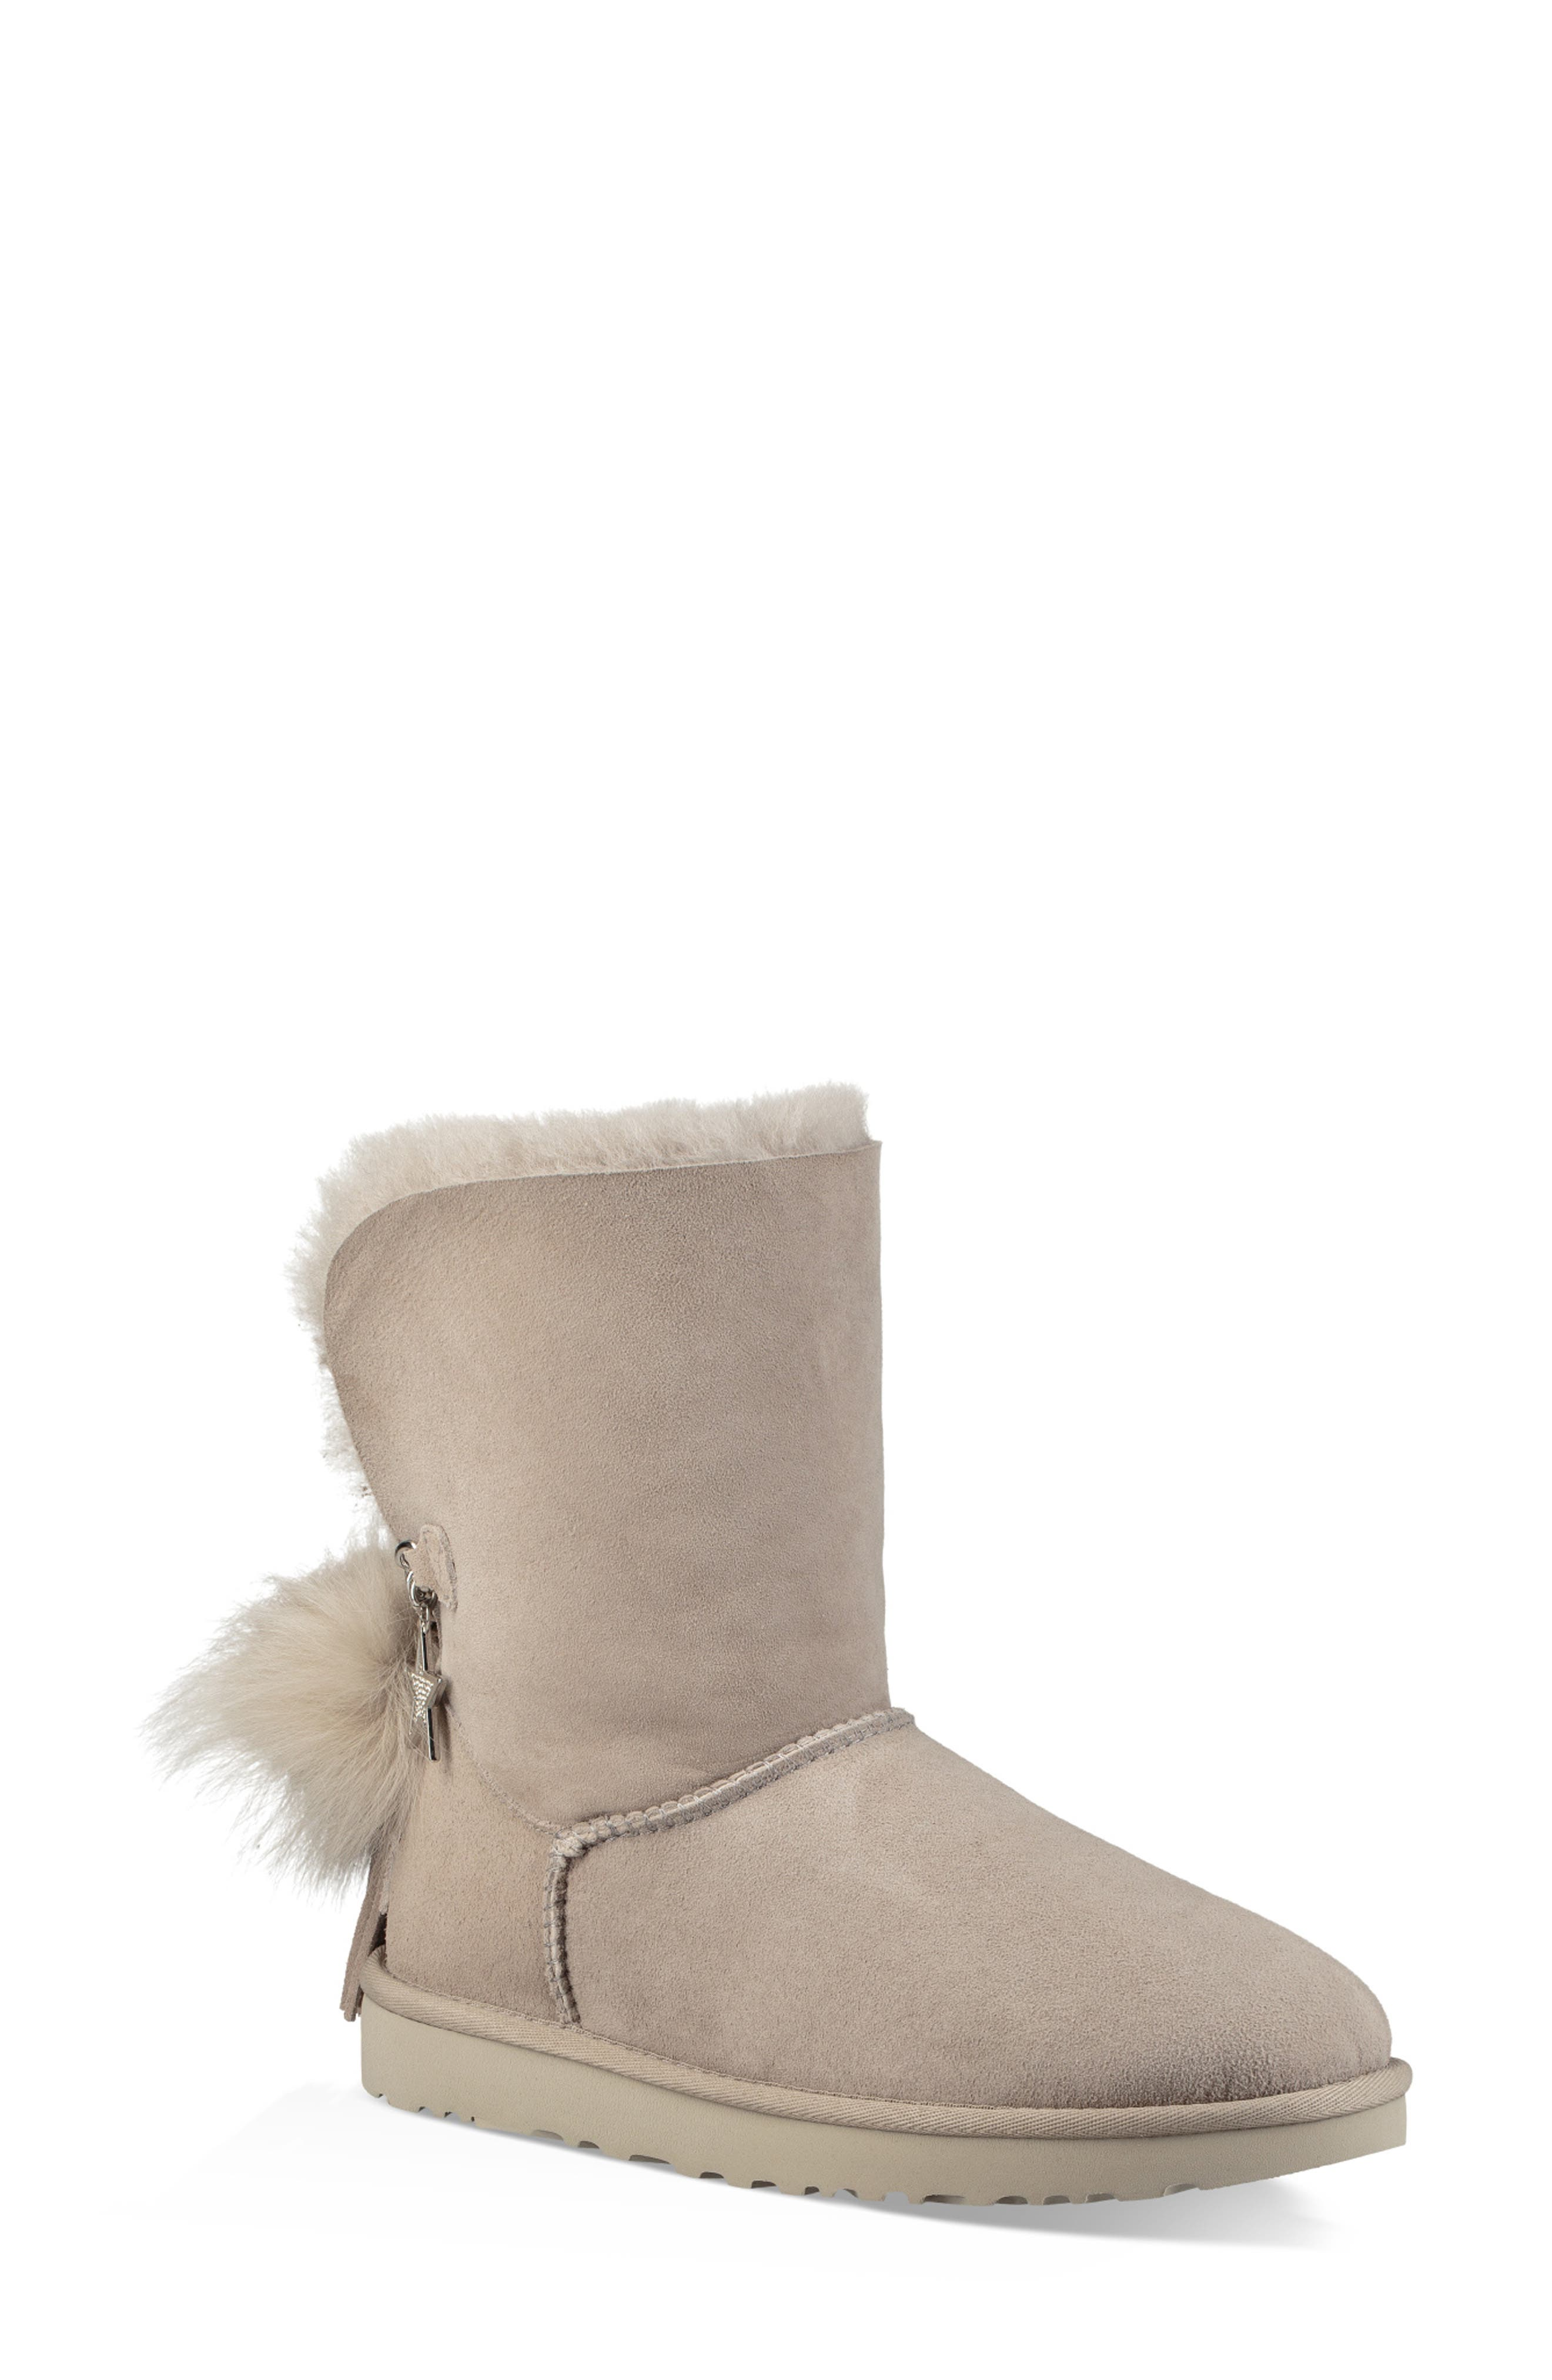 Classic Charm Bootie,                         Main,                         color, WILLOW SUEDE